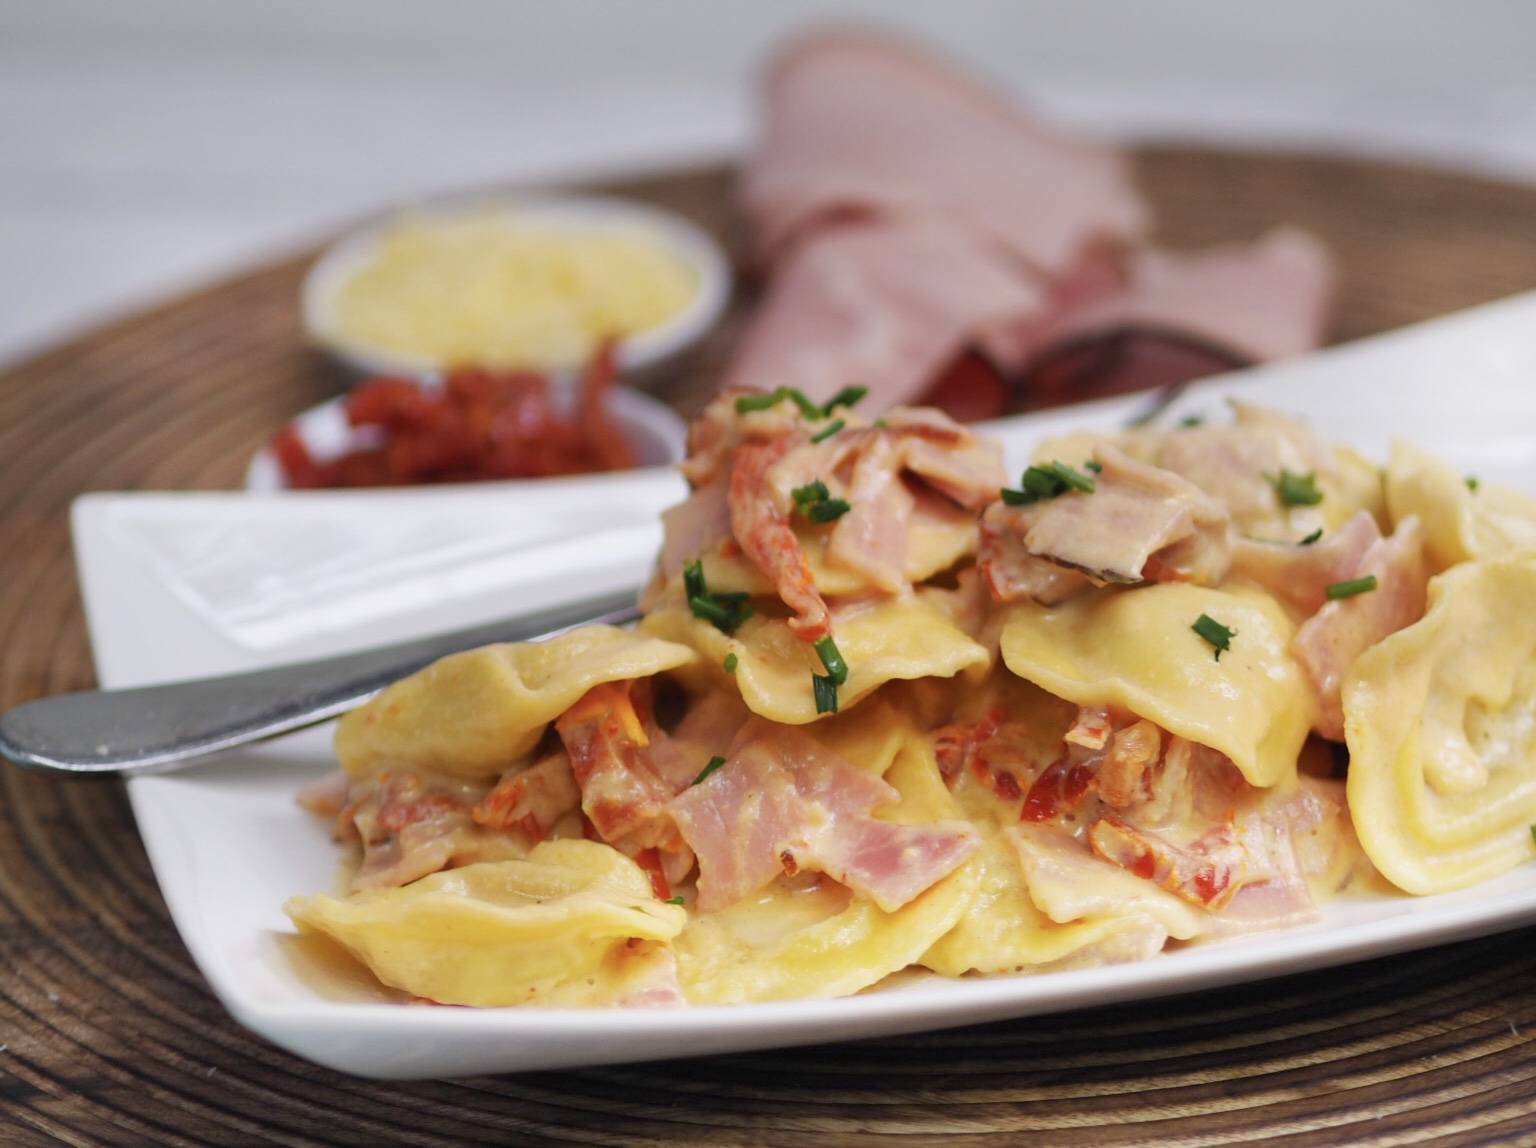 10 Minute Creamy Cheese Ravioli with Ham and Sun Dried Tomatoes